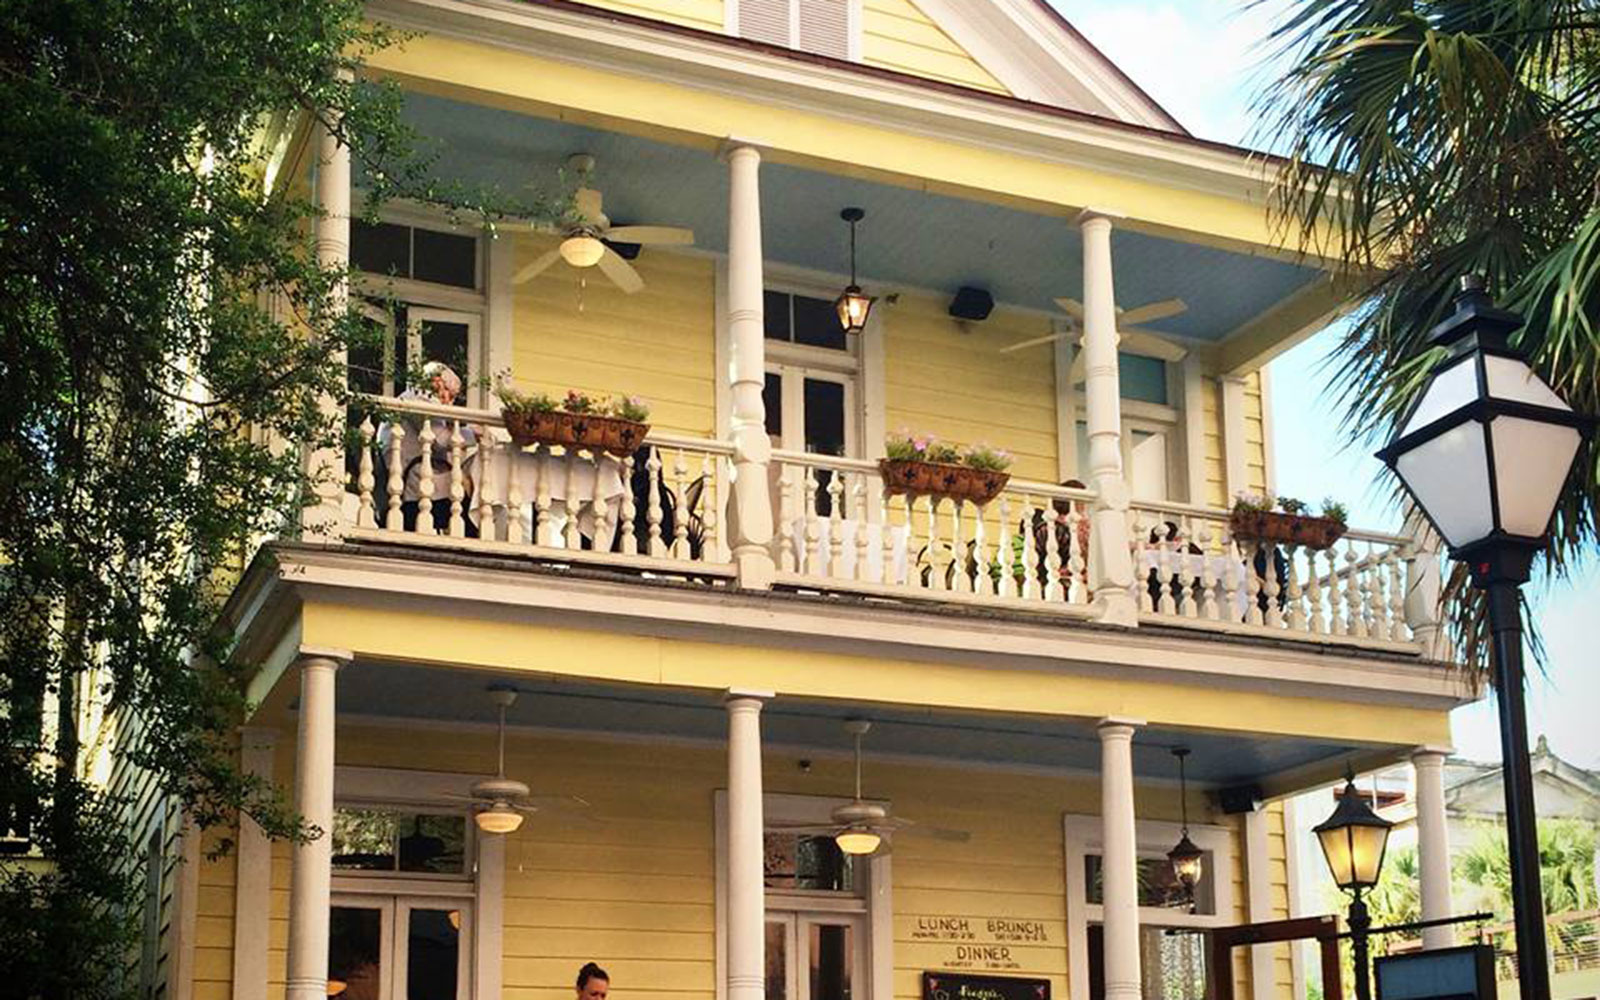 America's Most Haunted Bars and Restaurants: Poogan's Porch, Charleston